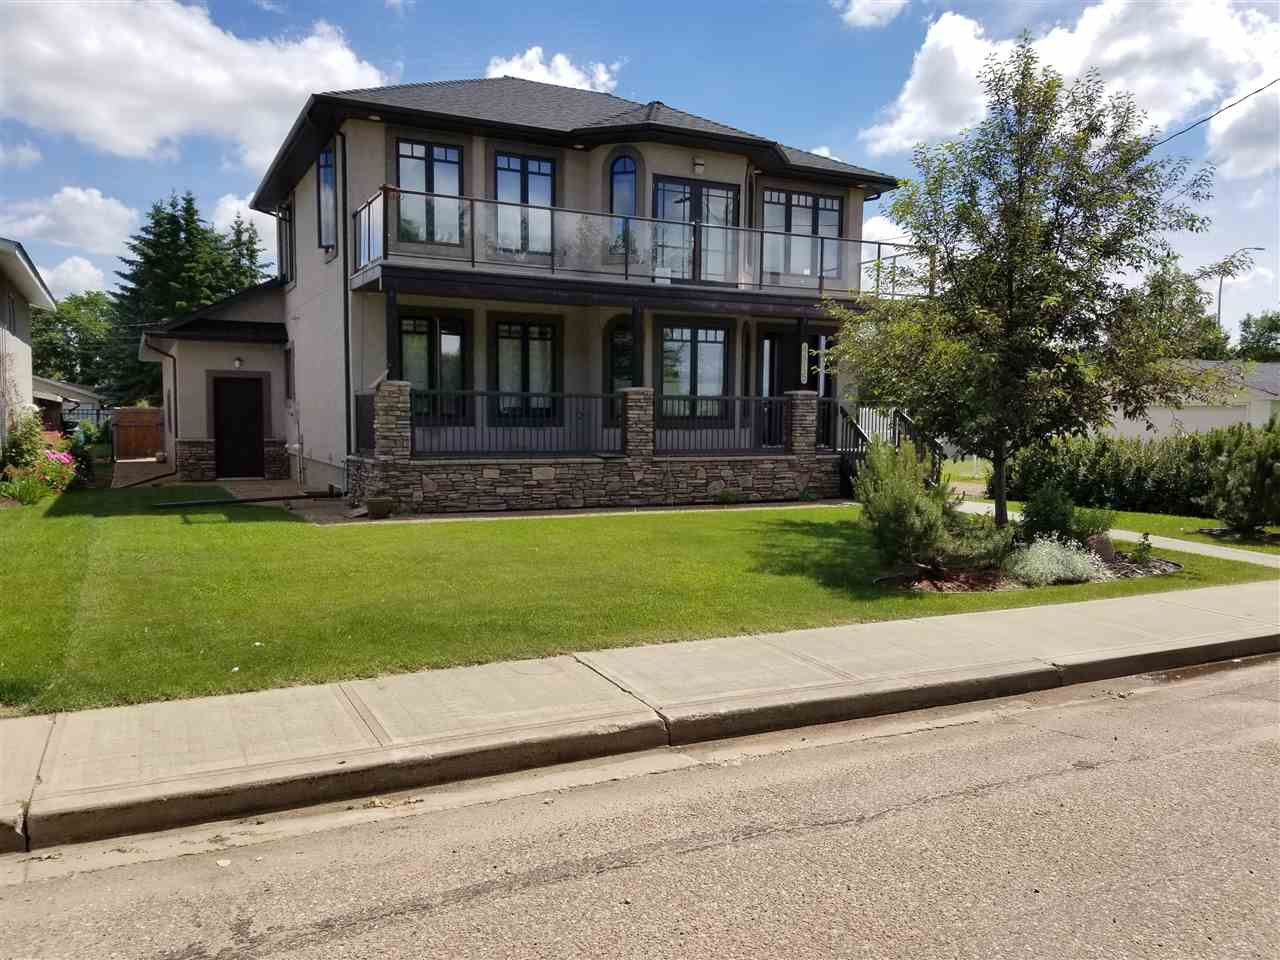 Main Photo: 4815 55 Street: Redwater House for sale : MLS®# E4203292